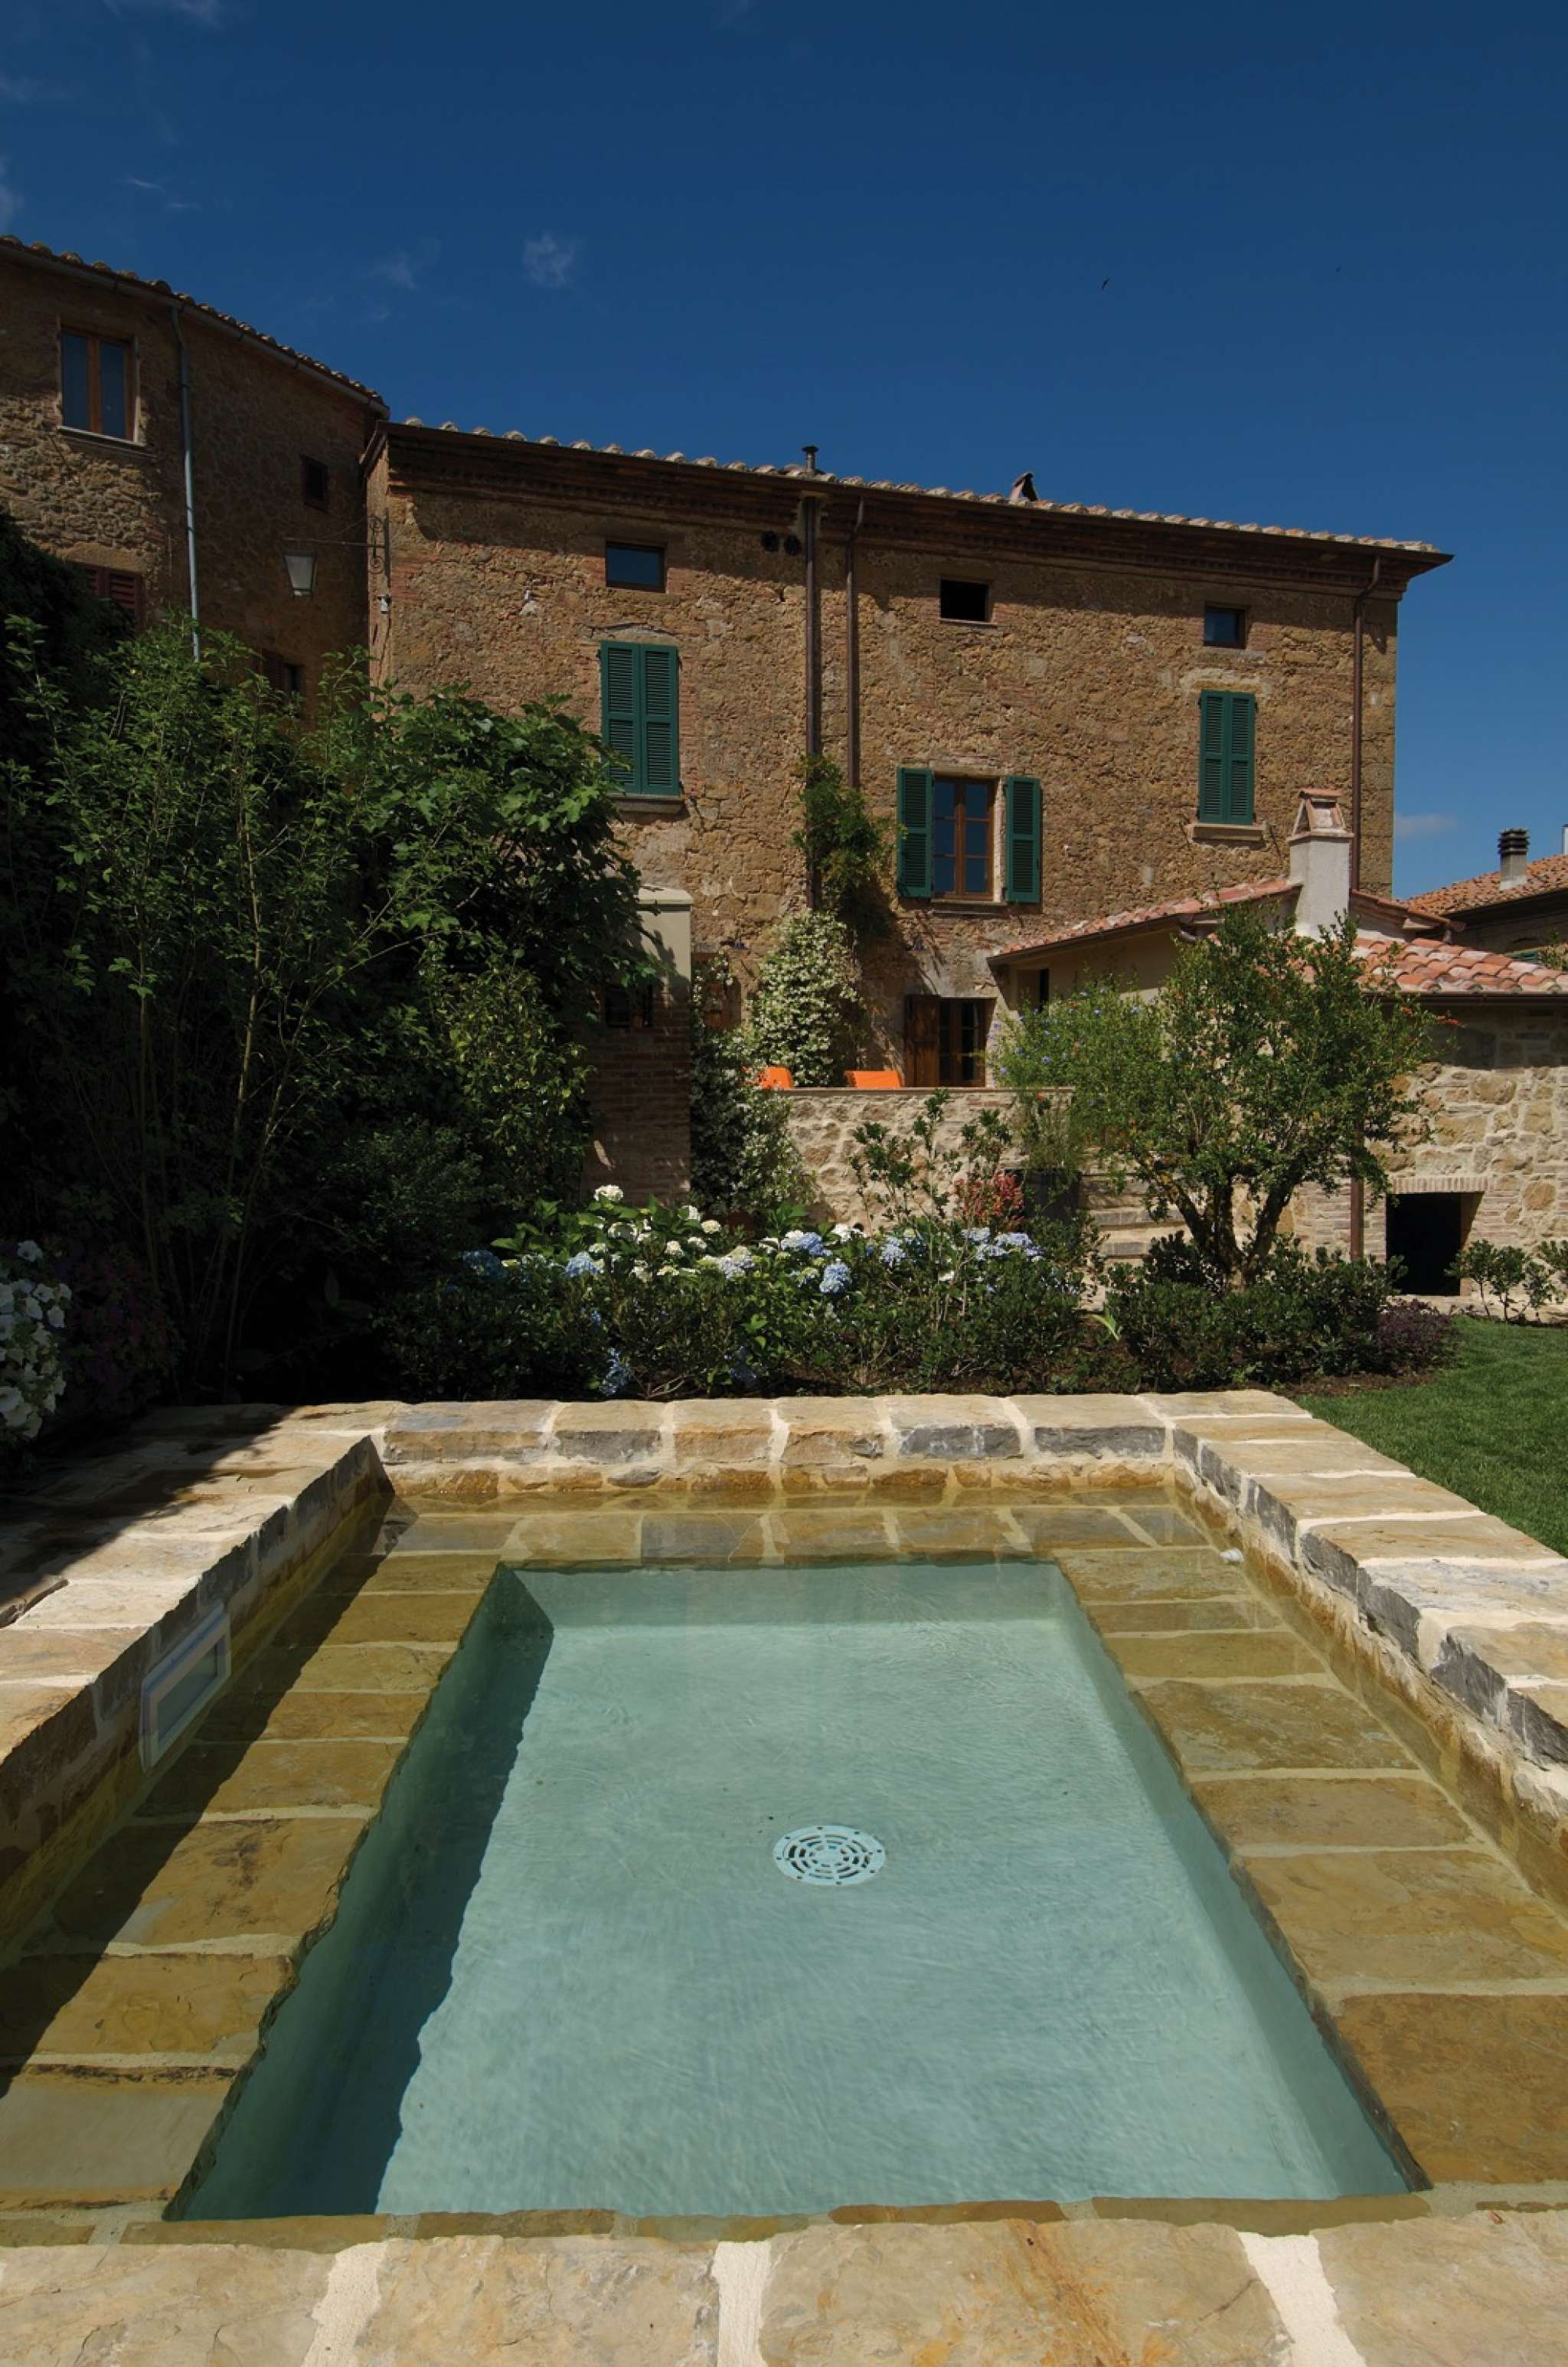 Villa Torrita Luxury Italian Palace For Rent In Siena